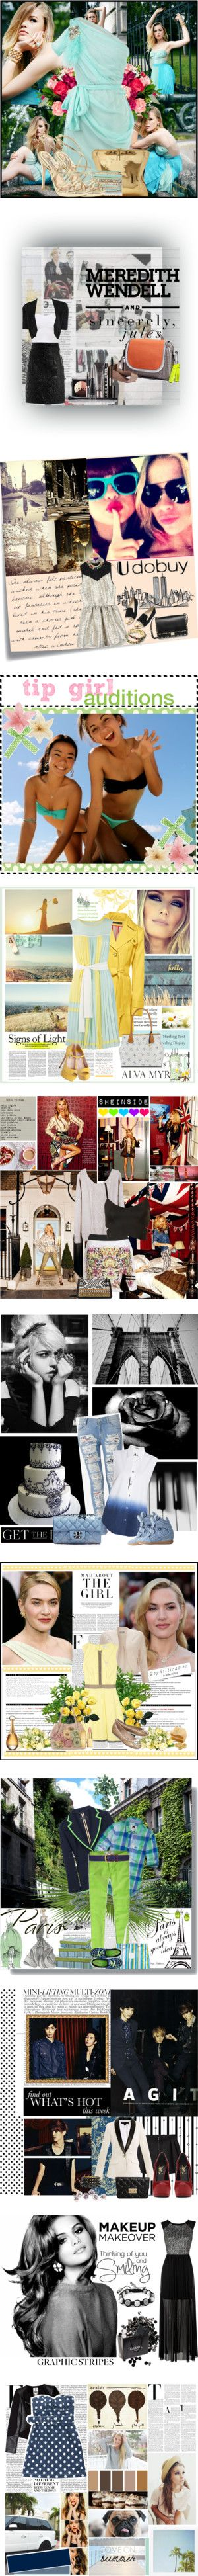 """""""Sets made for me.♥ part 6"""" by ruppy ❤ liked on Polyvore"""